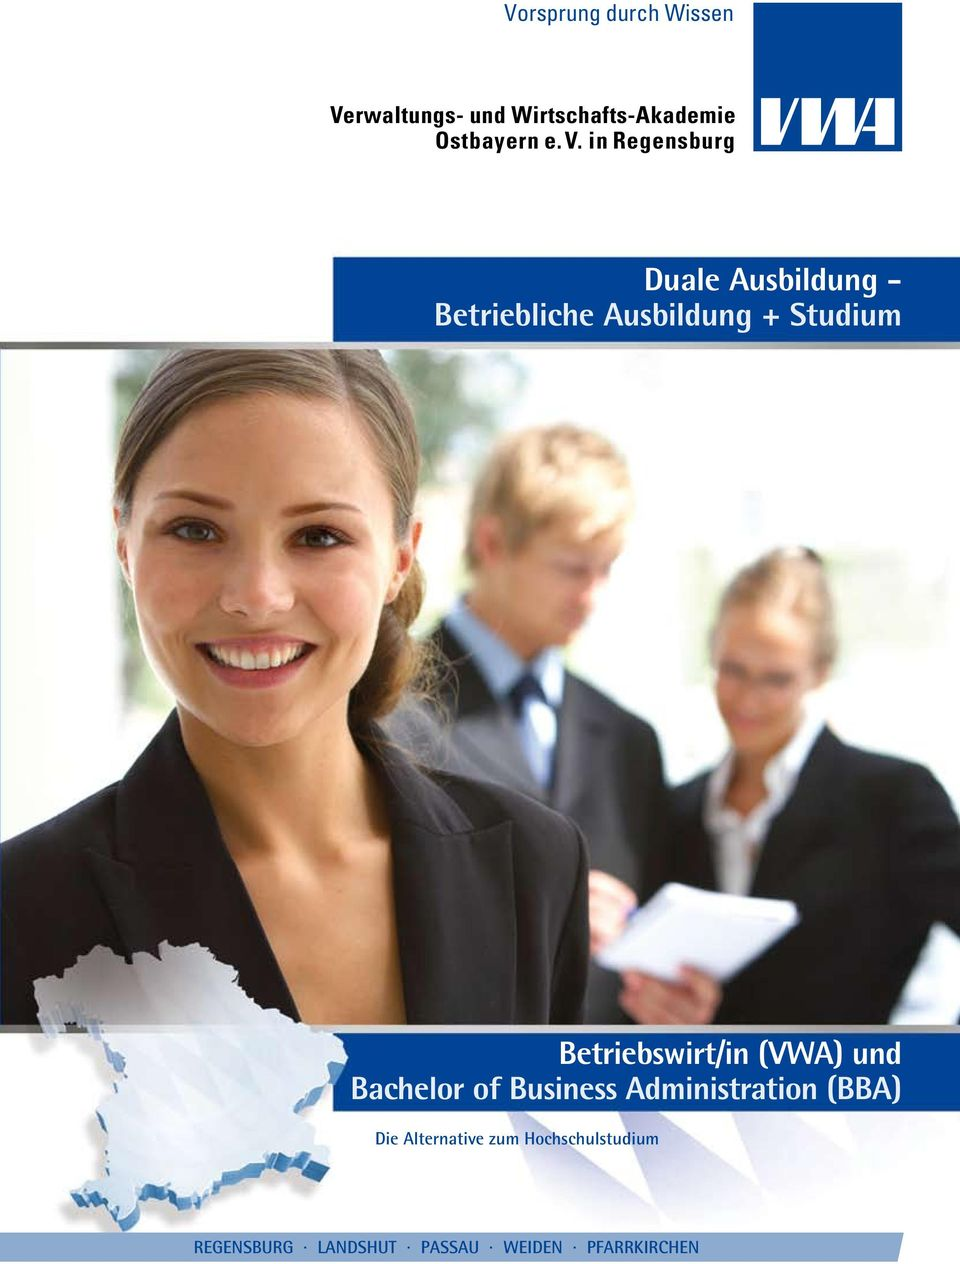 Betriebswirt/in (VWA) und Bachelor of Business Administration (BBA) Die